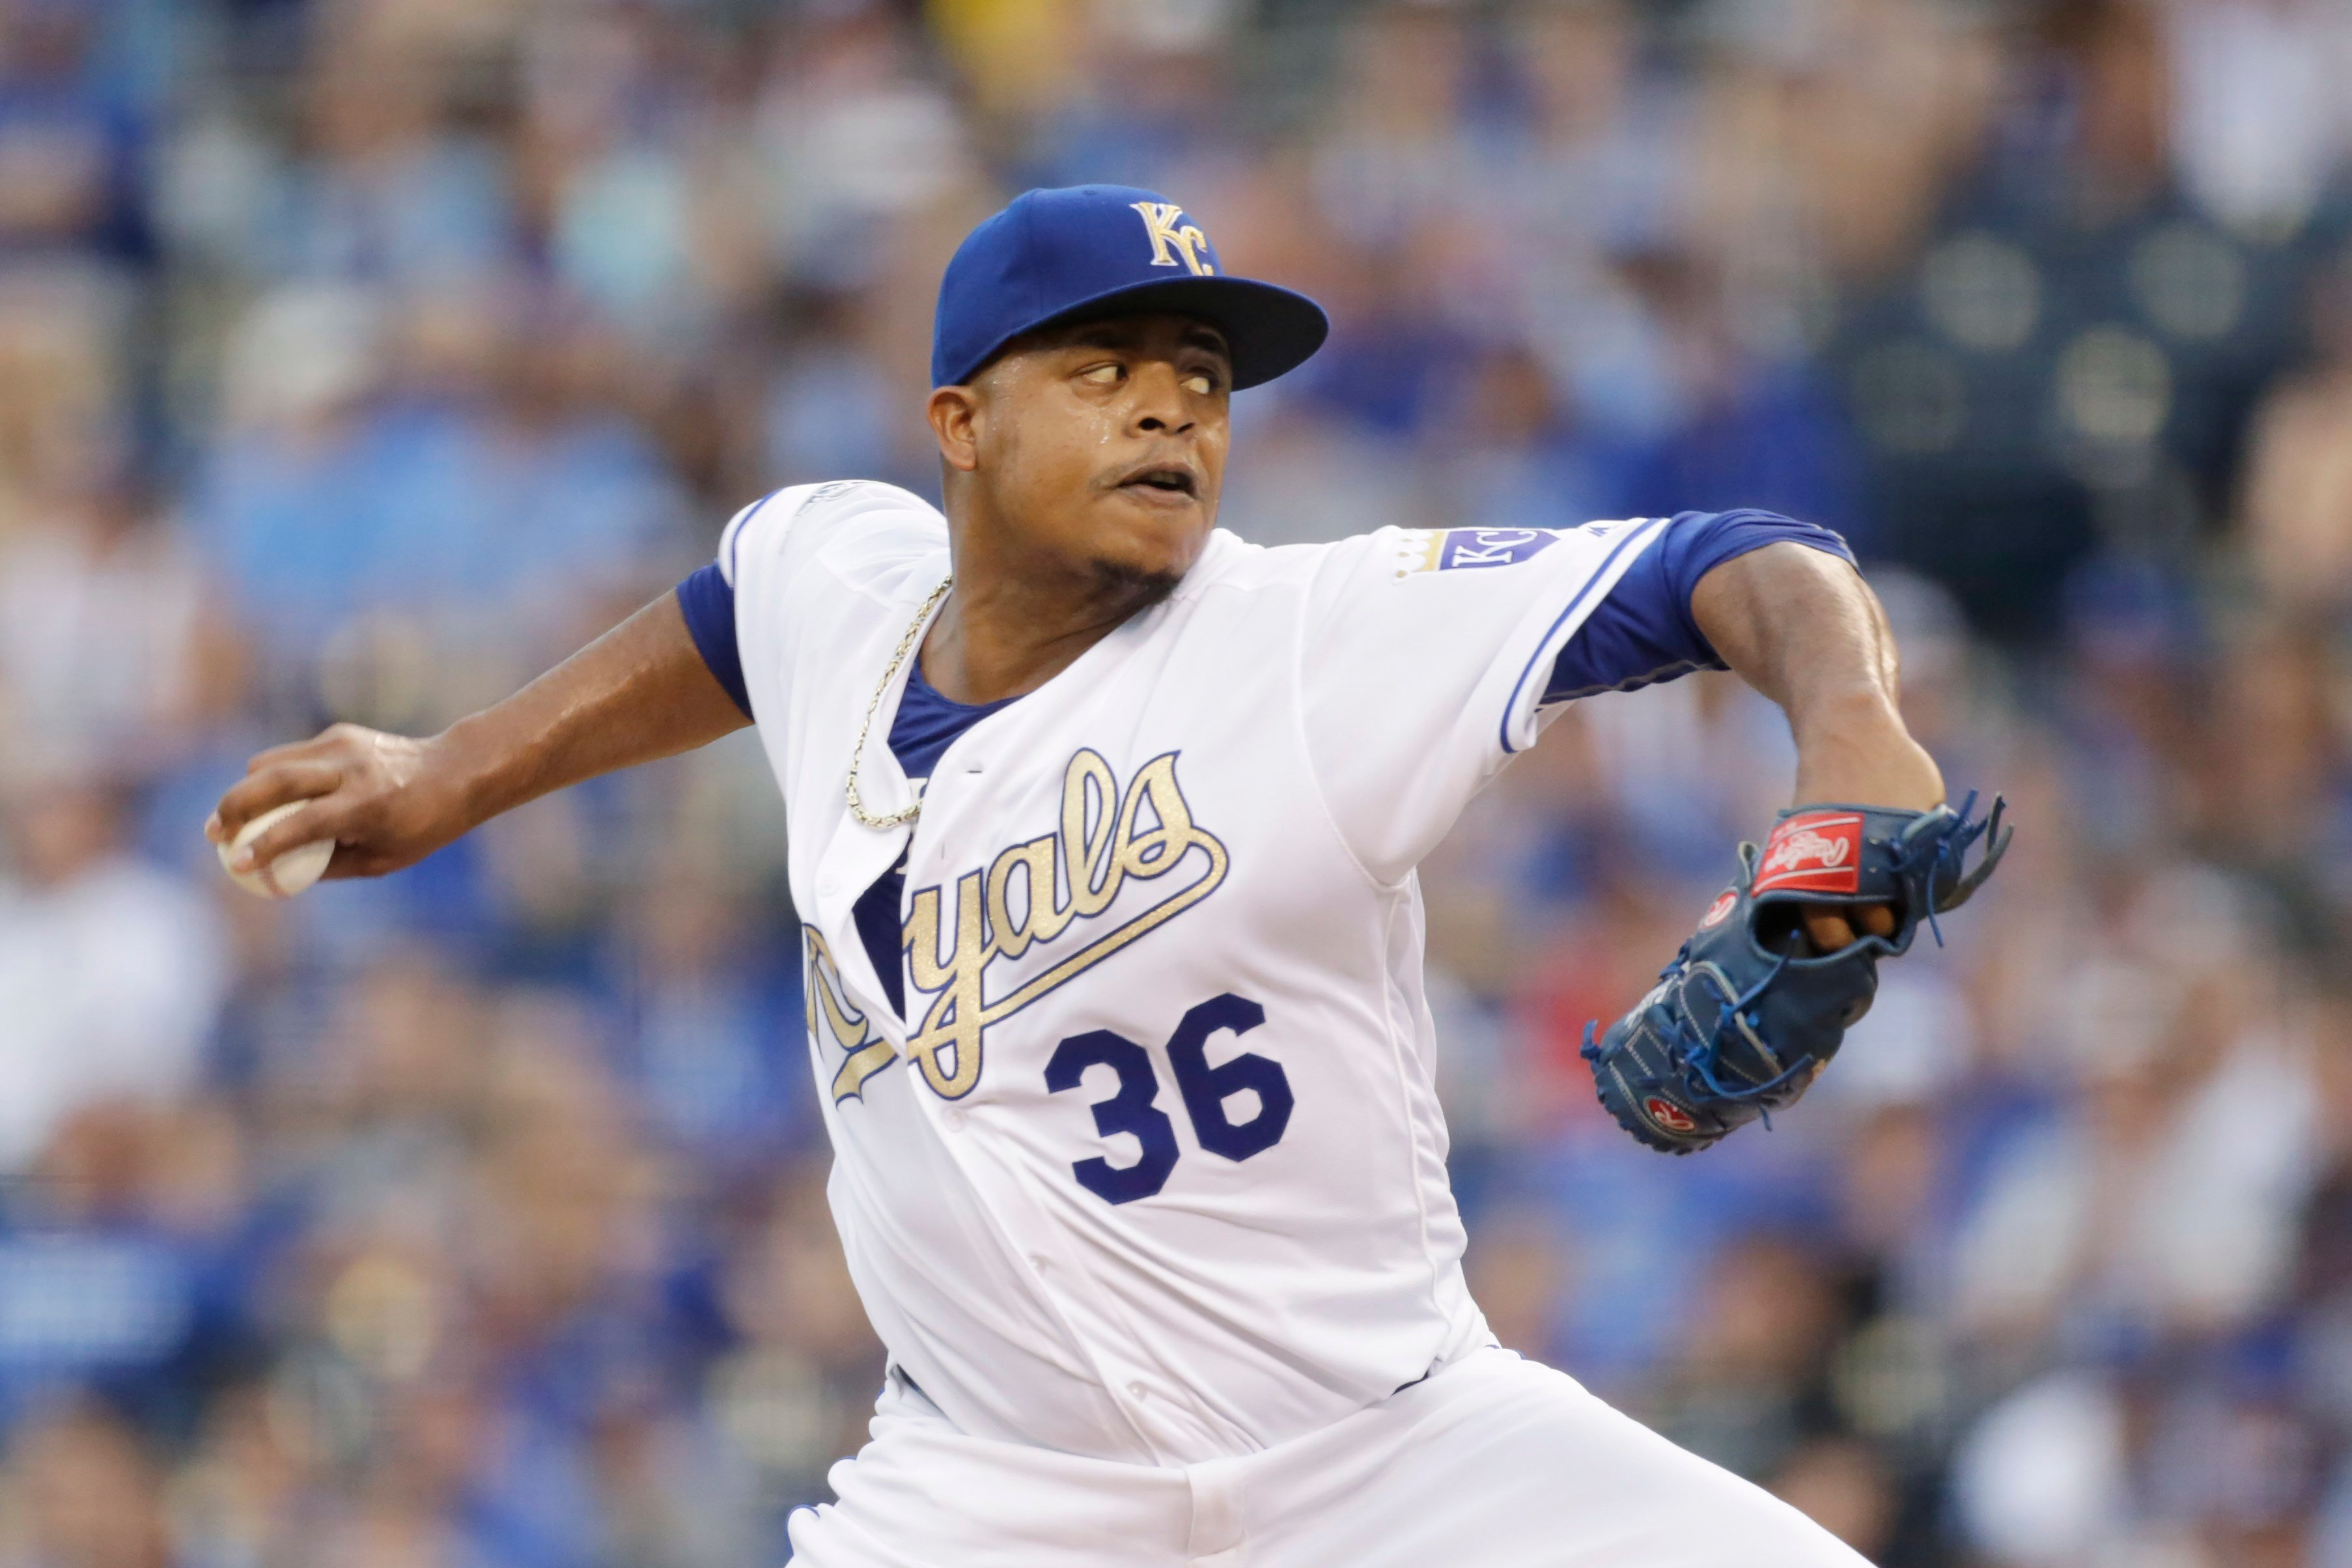 In two seasons with the Royals, Volquez was 23-20 with an ERA of 4.43. (AP)